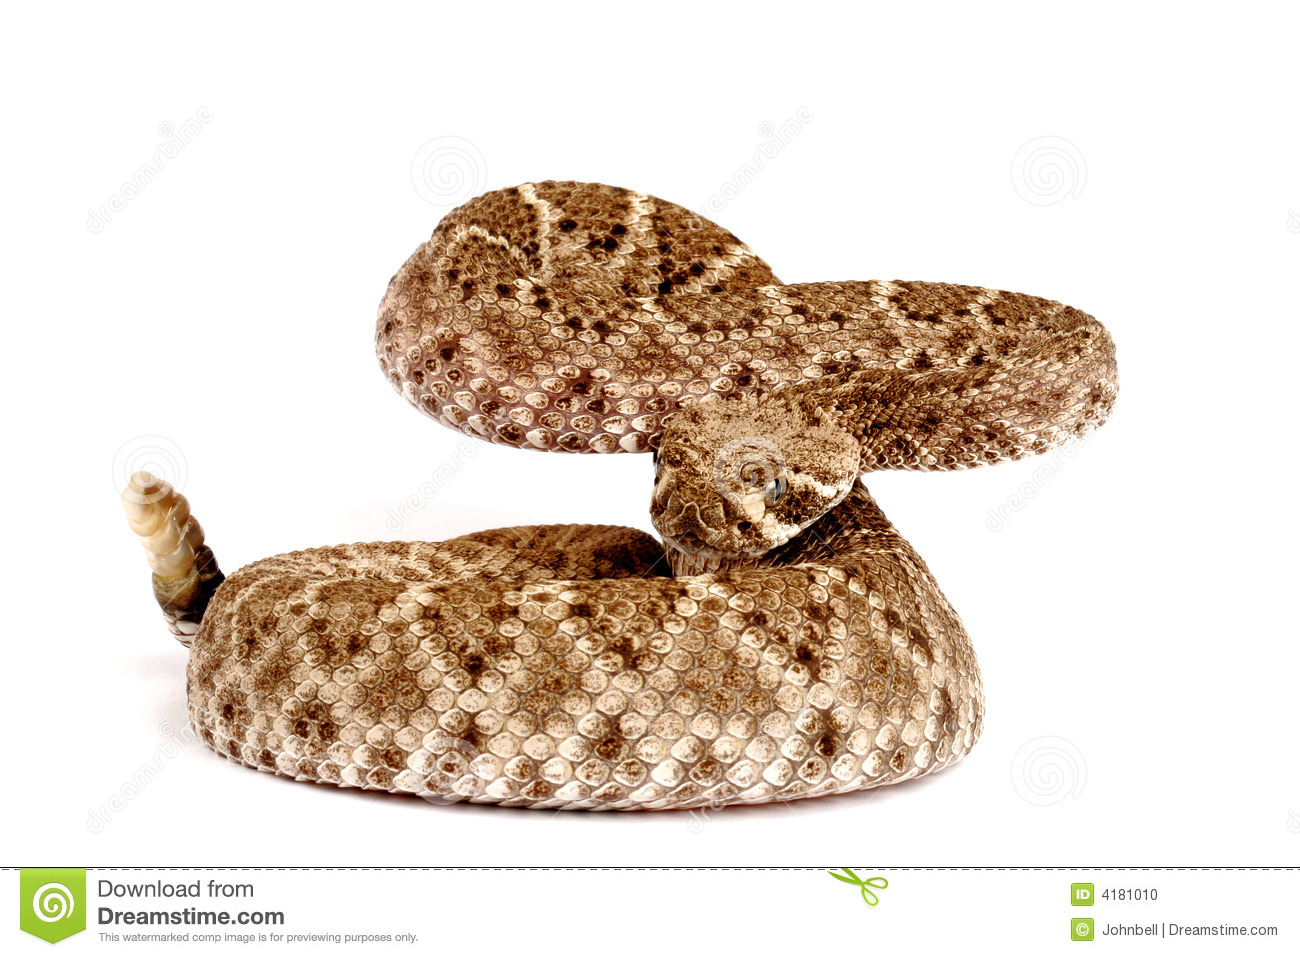 Western Diamondback Rattlesnake Stock Photo - Image of